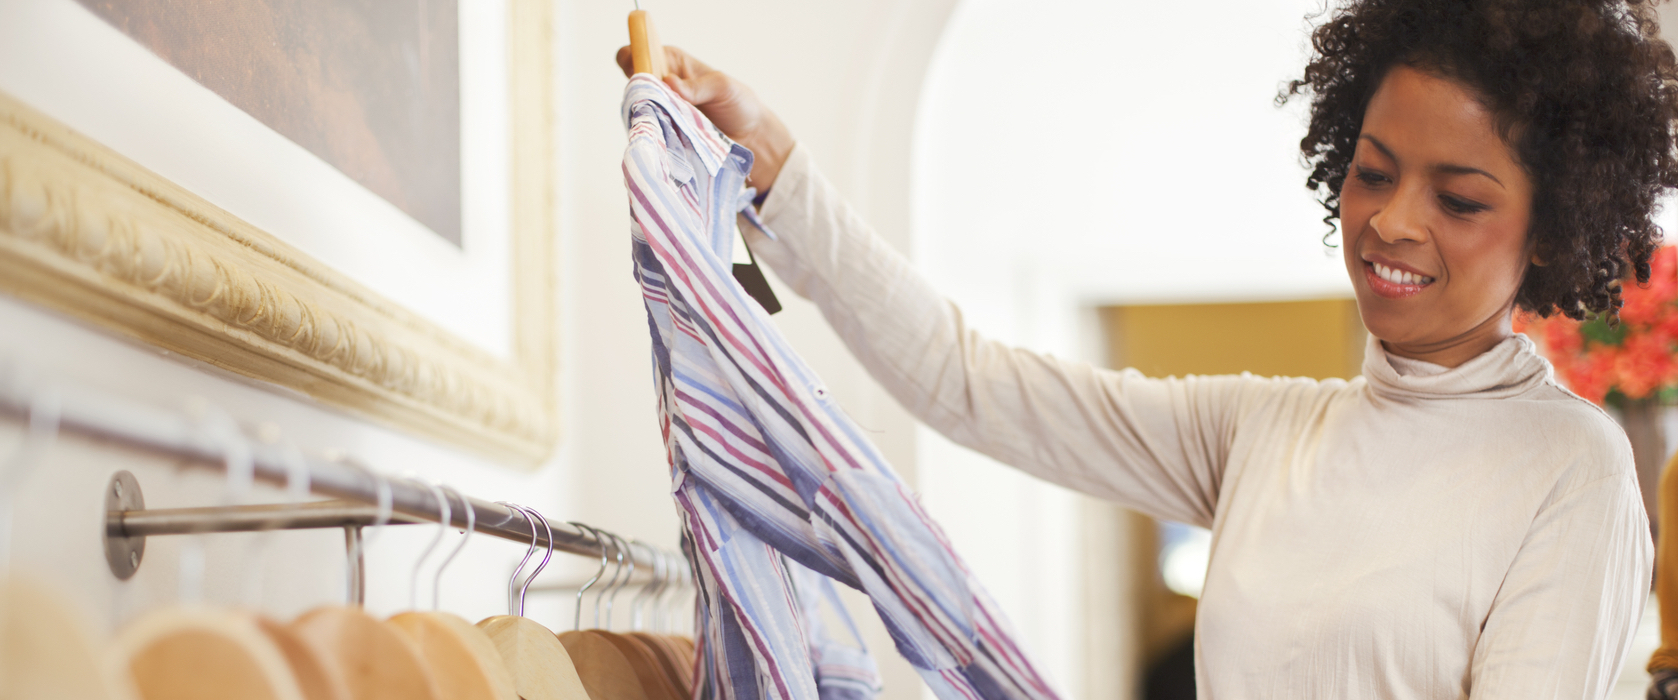 94796248845 Where to Sell Your Clothes Online - NerdWallet